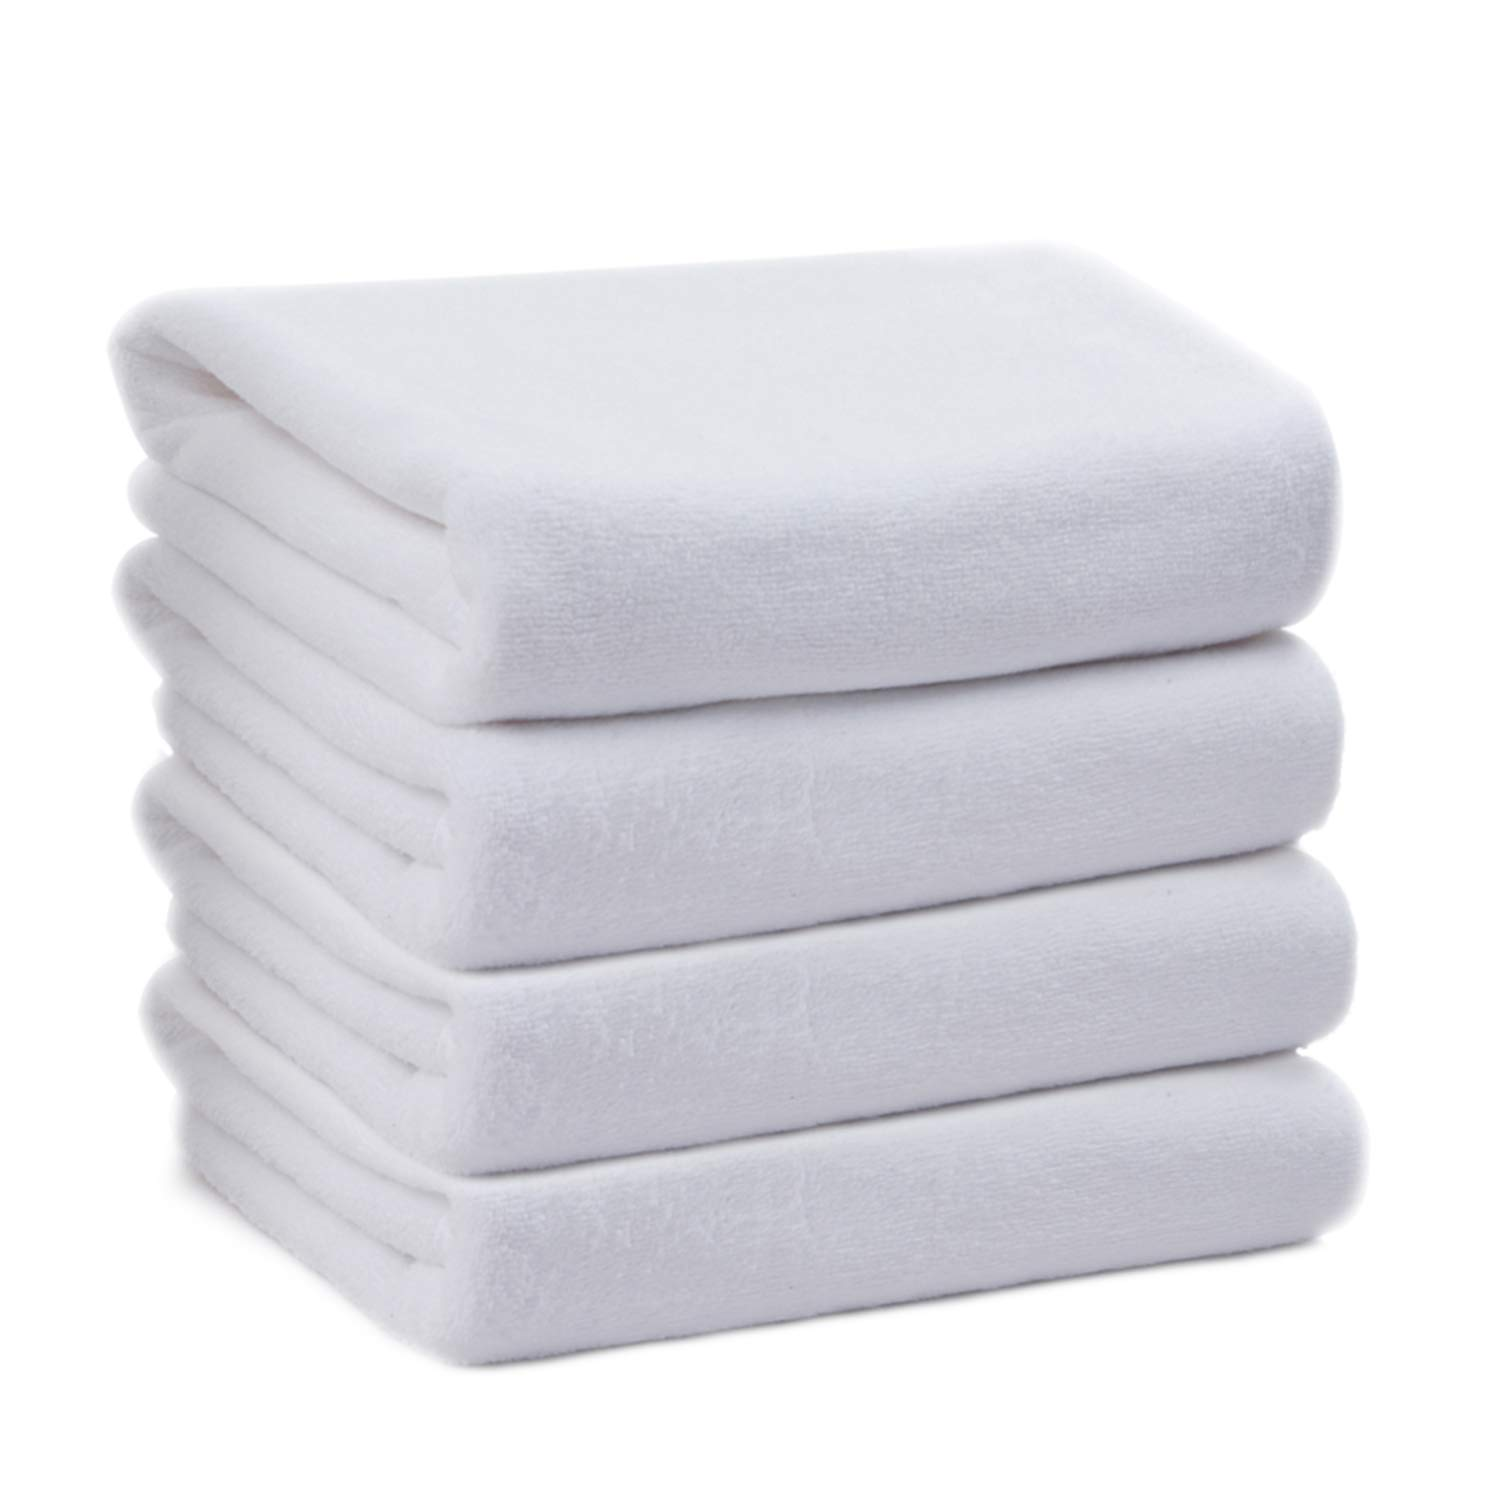 KinHwa Microfiber Large Hand Towels for Bathroom - Soft and Light Face Towels Fast Drying Wash Towels for Bath, Spa, Gym White 4 Pack